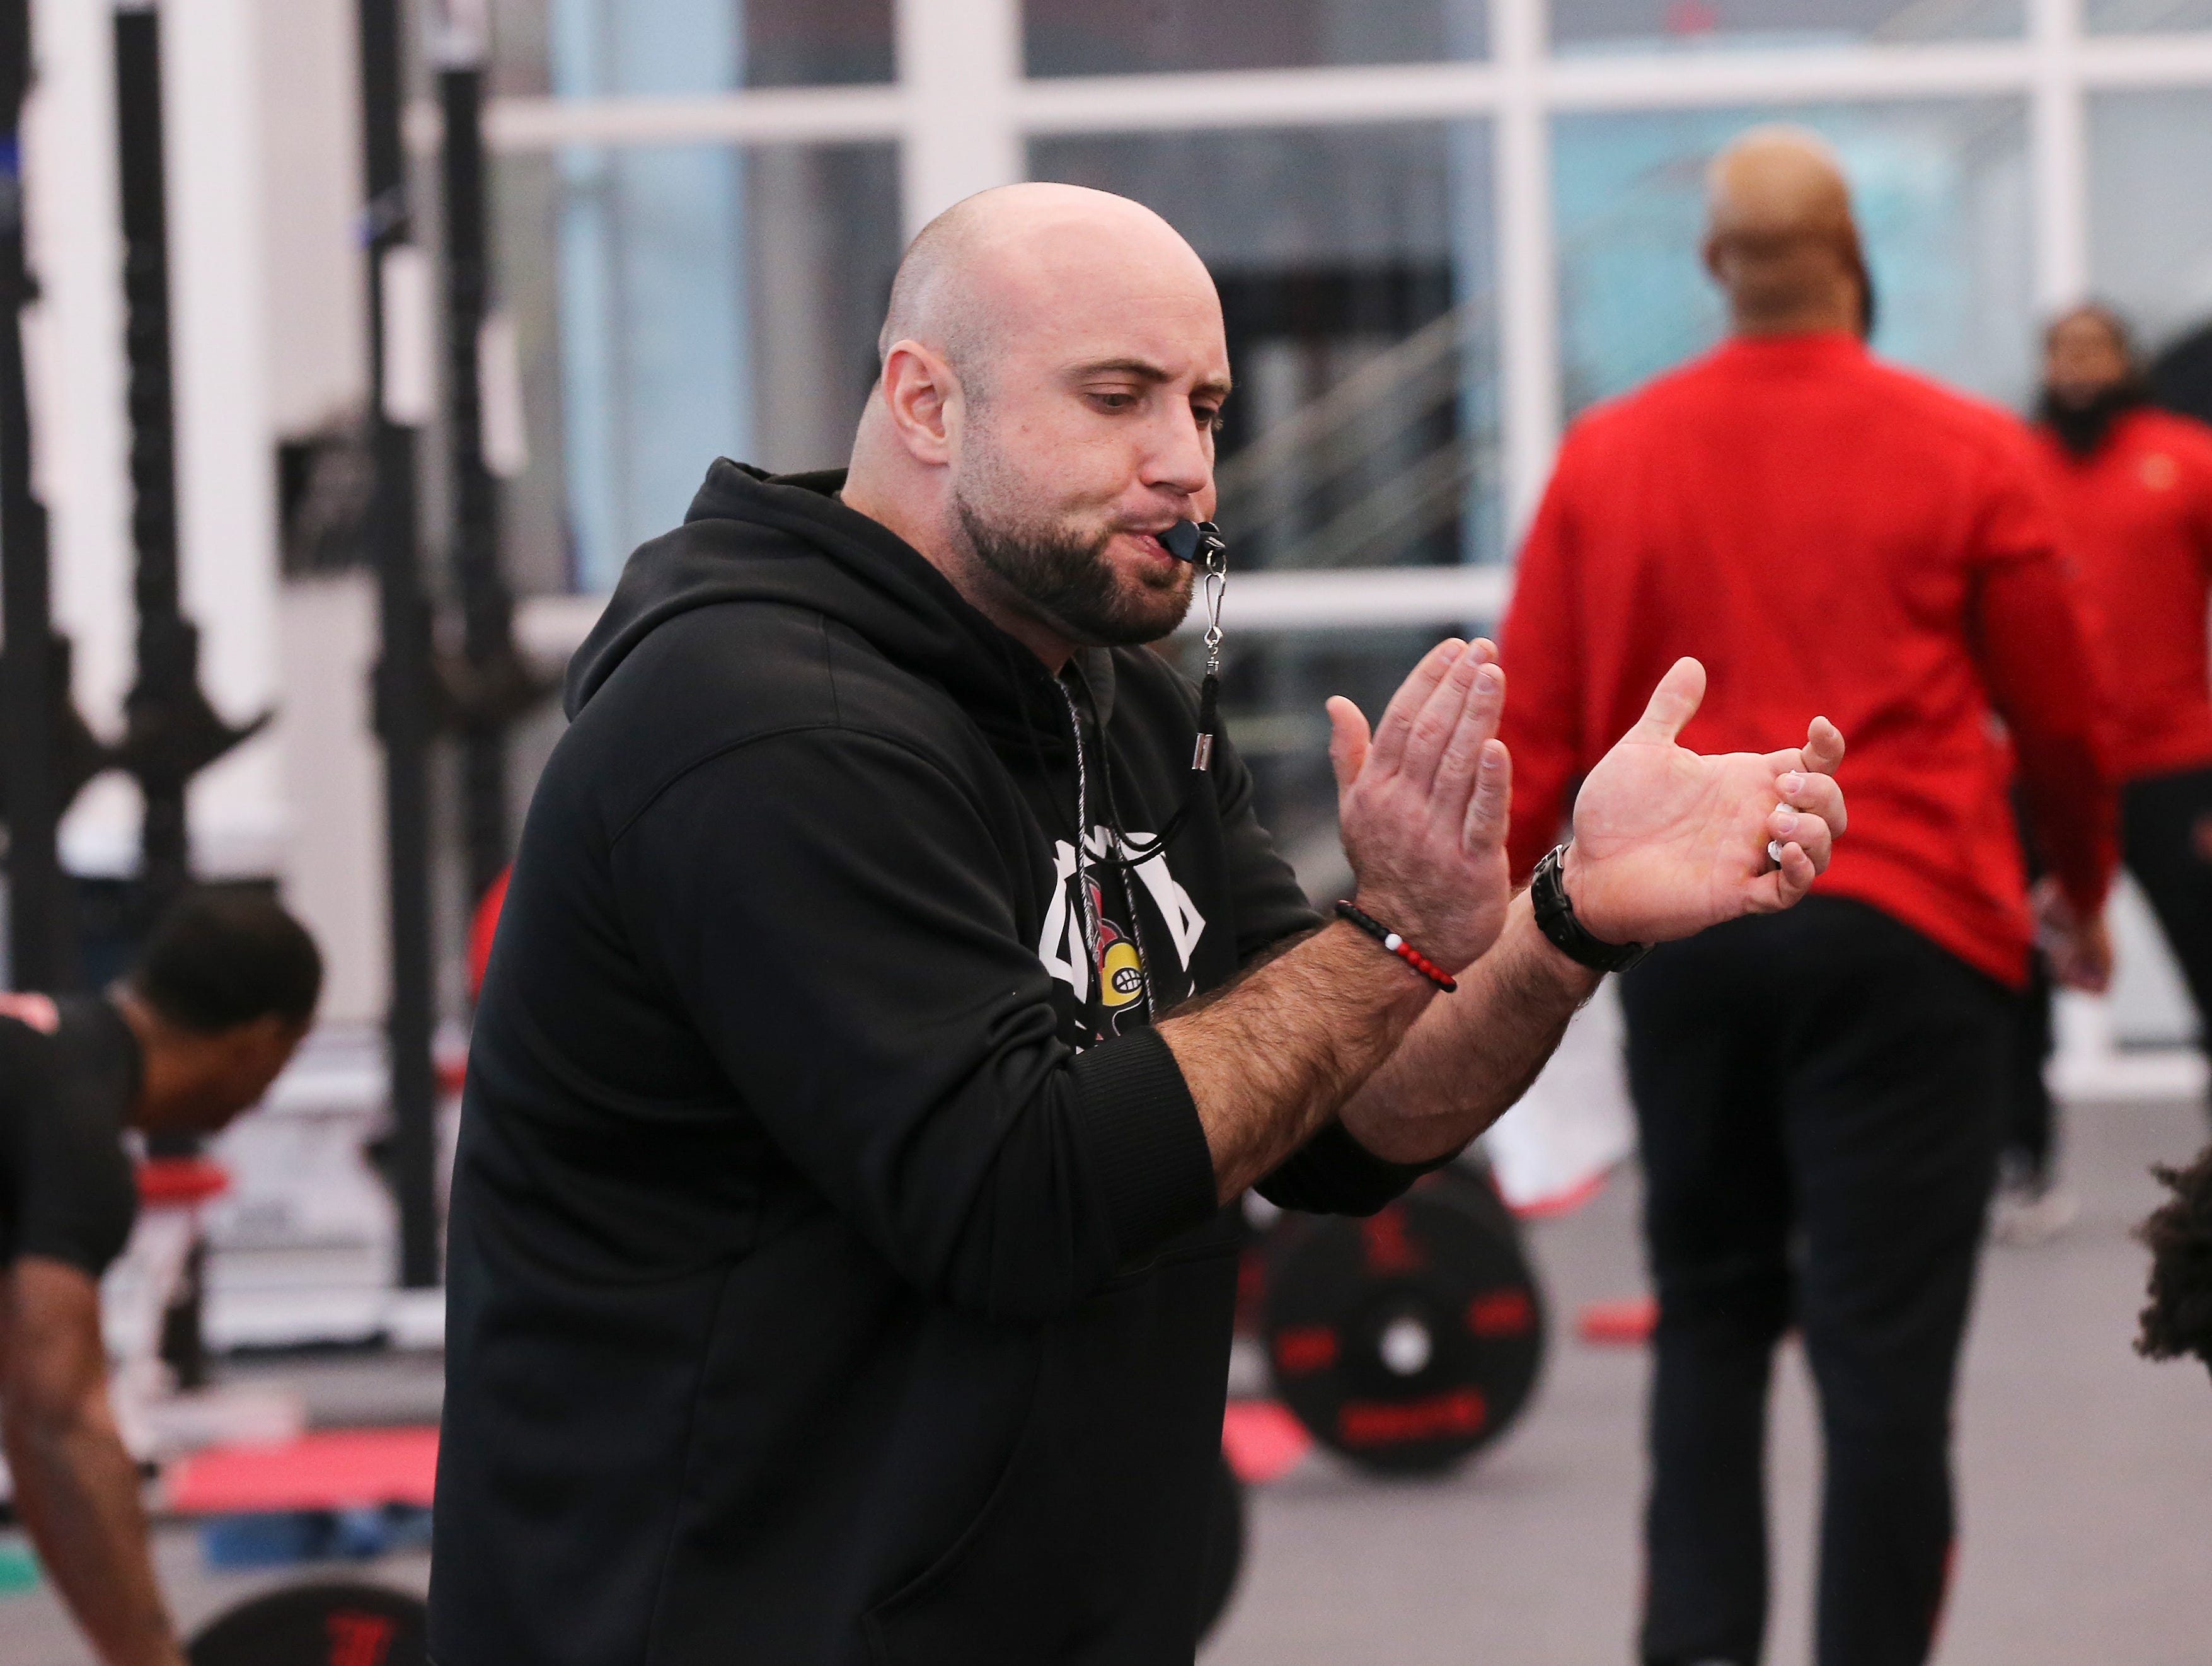 U of L strength coach Mike Sirignano encourages the team during a strength and conditioning workout at the Schnellenberger Complex.